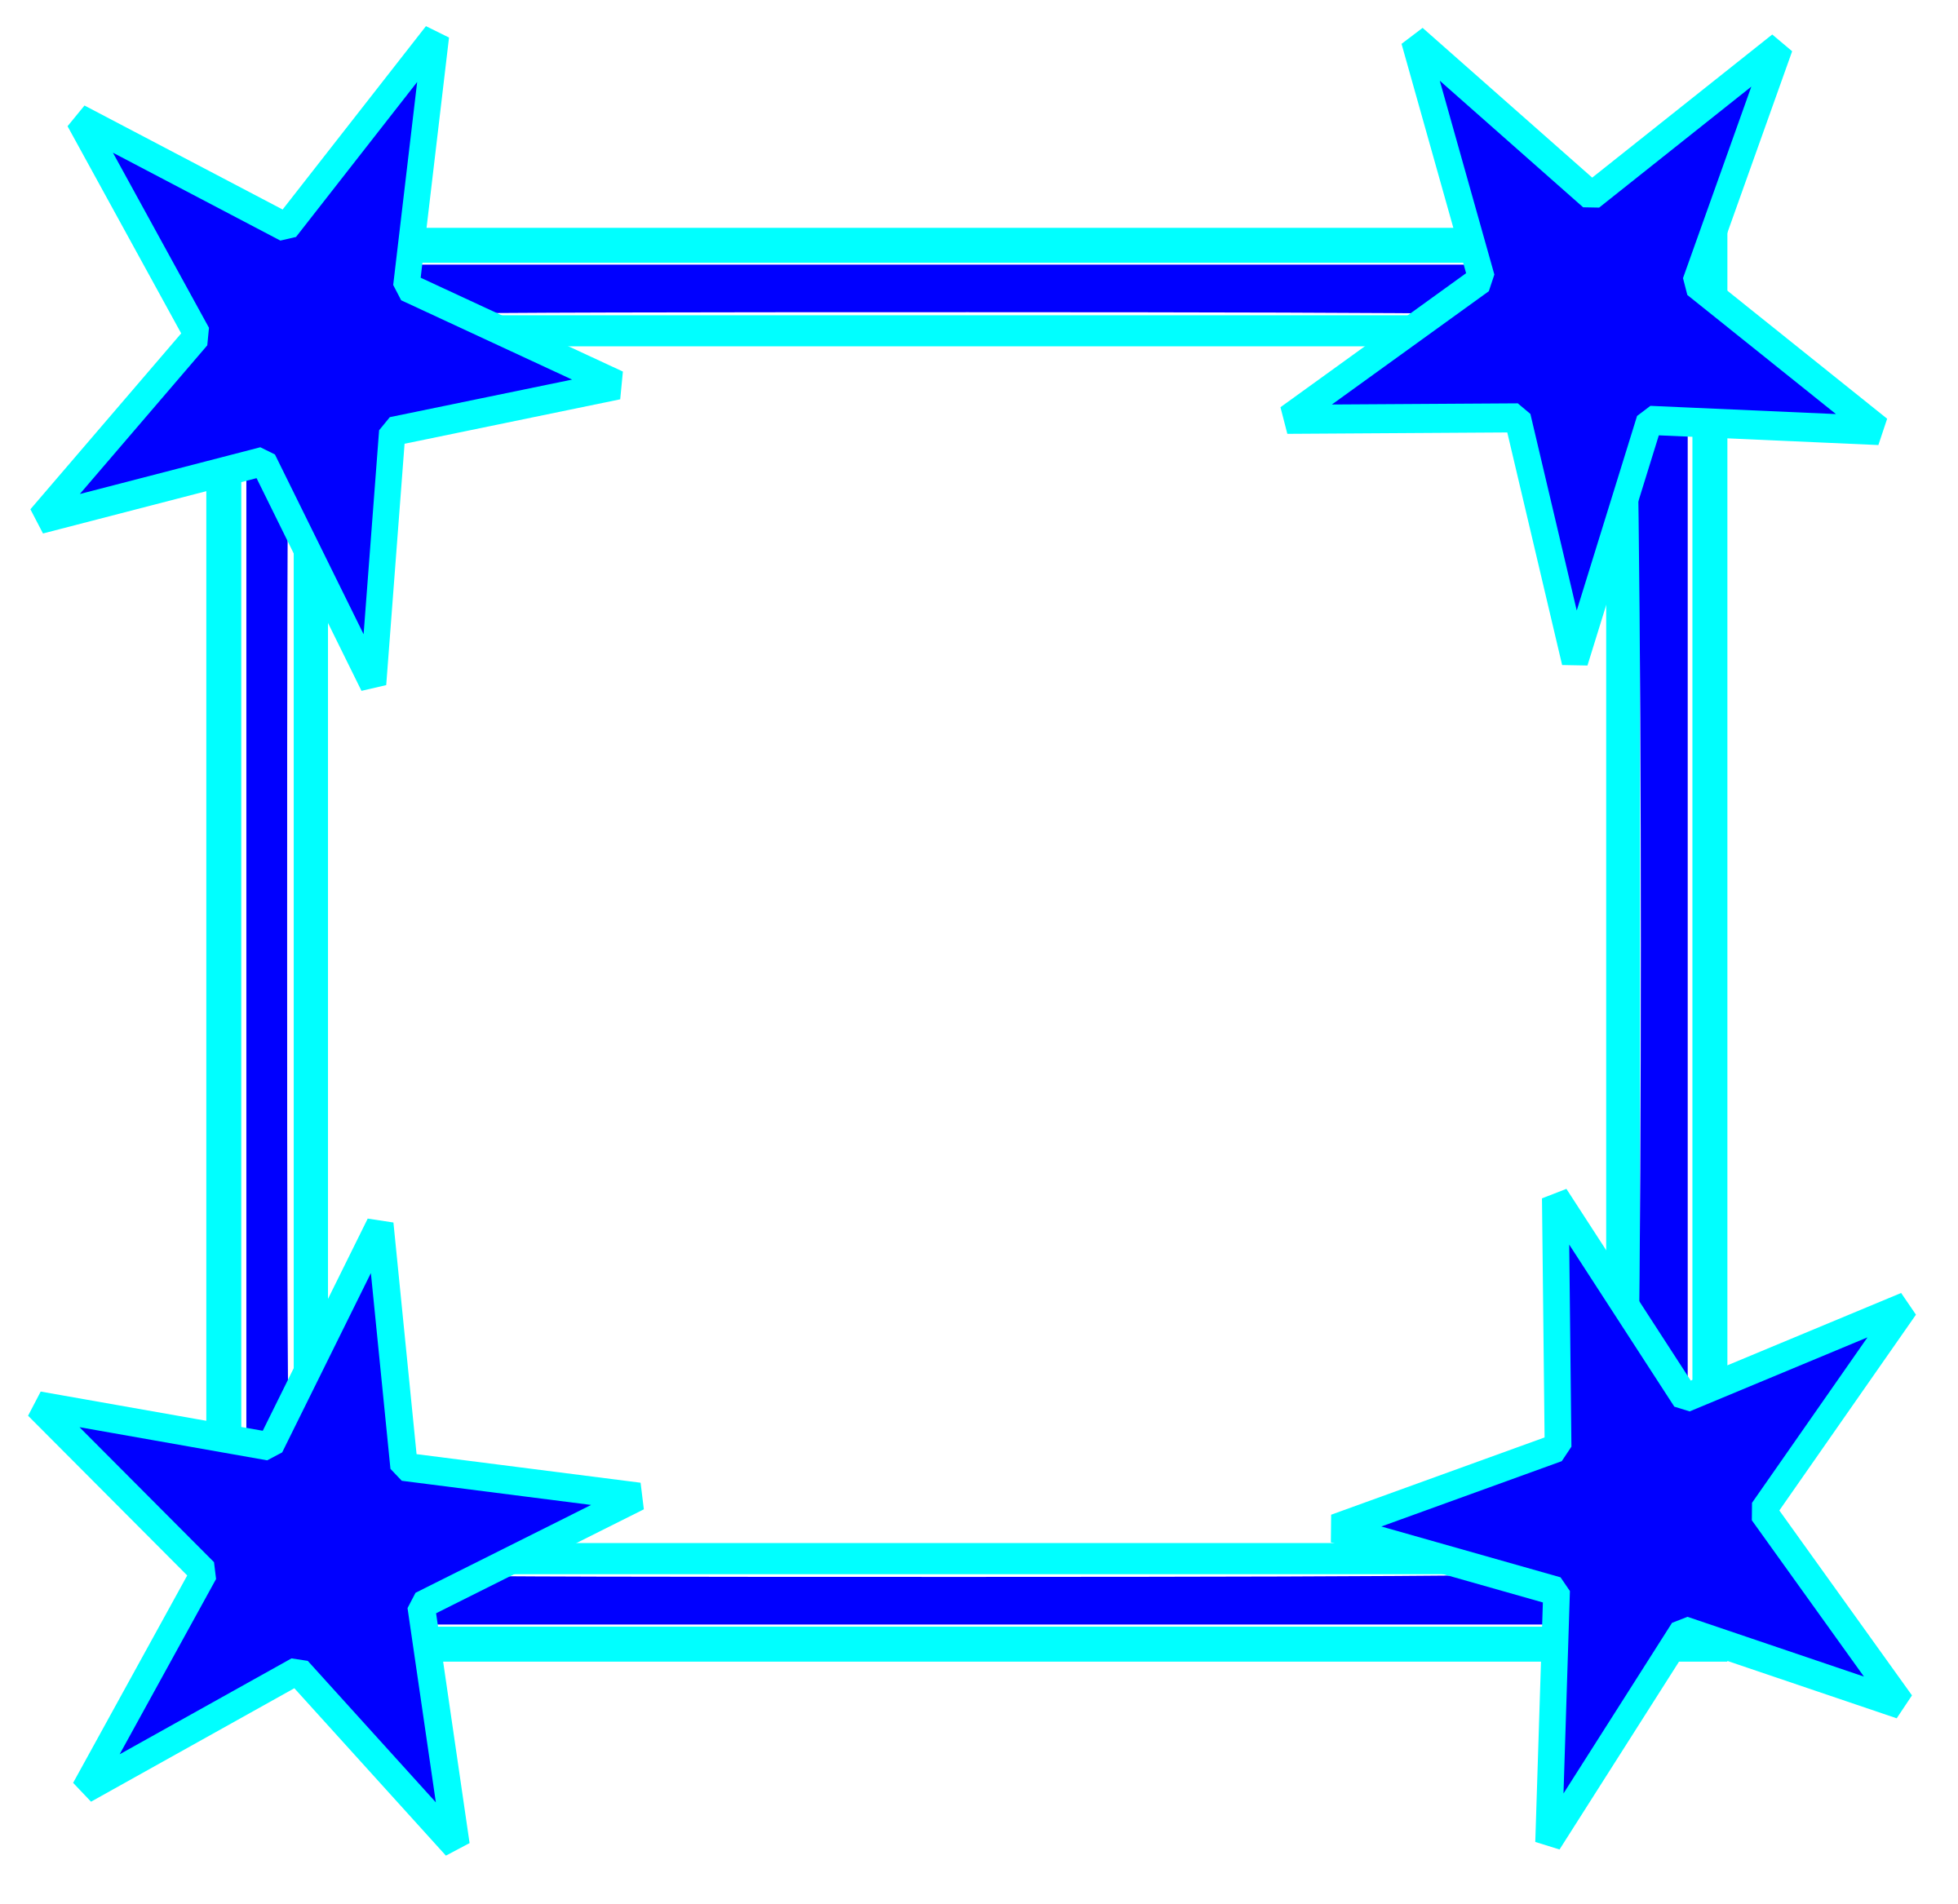 Star clipart picture frame. Simple bright blue cornered